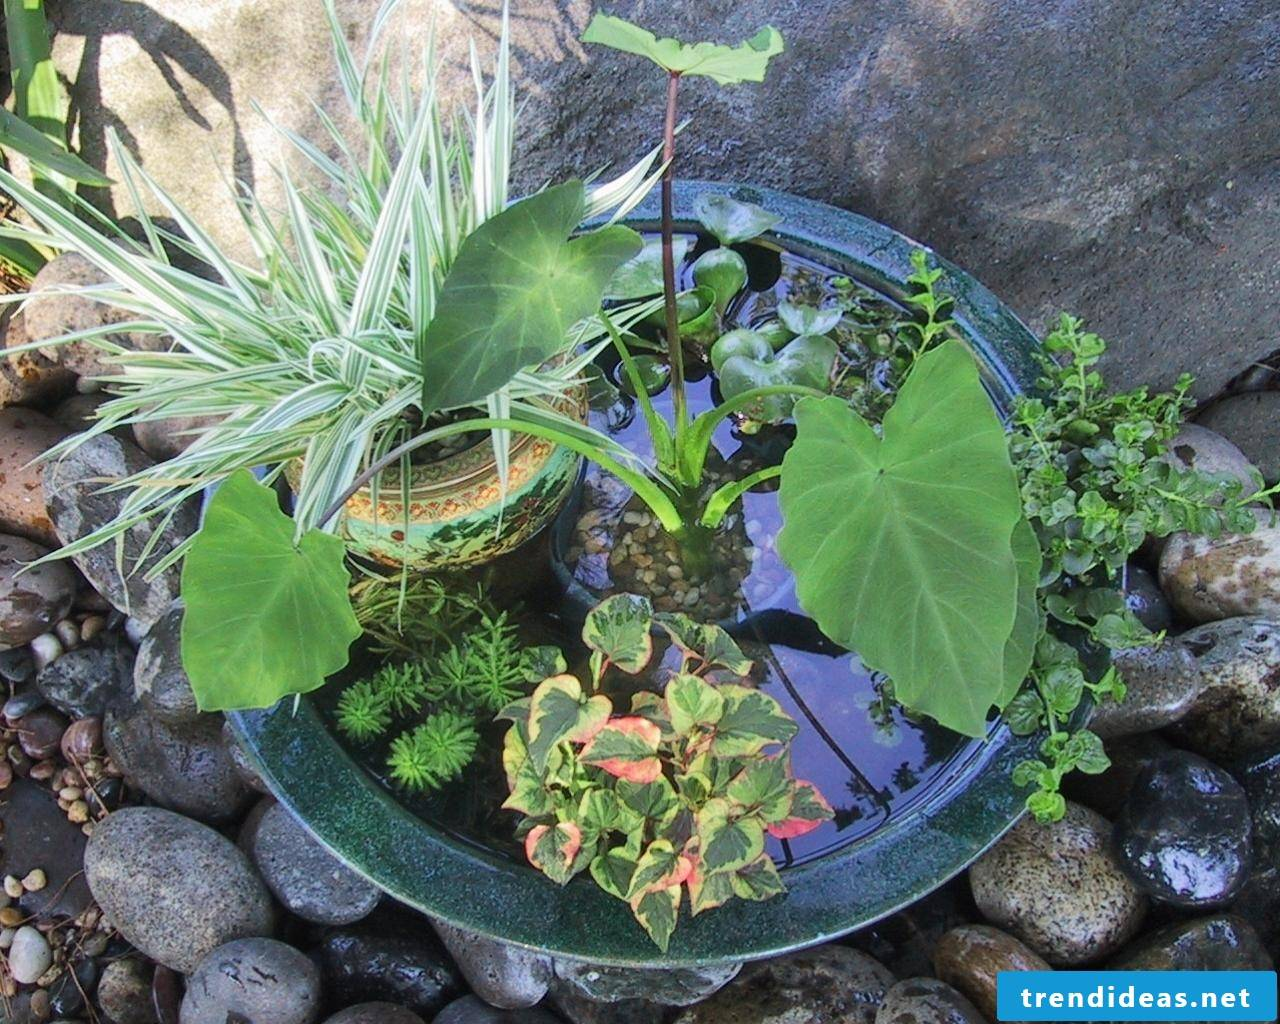 DIY instructions for the mini-pond Create - You can make our own balcony ideas, even if the garden is not available or the conditions for a biotope are not met.